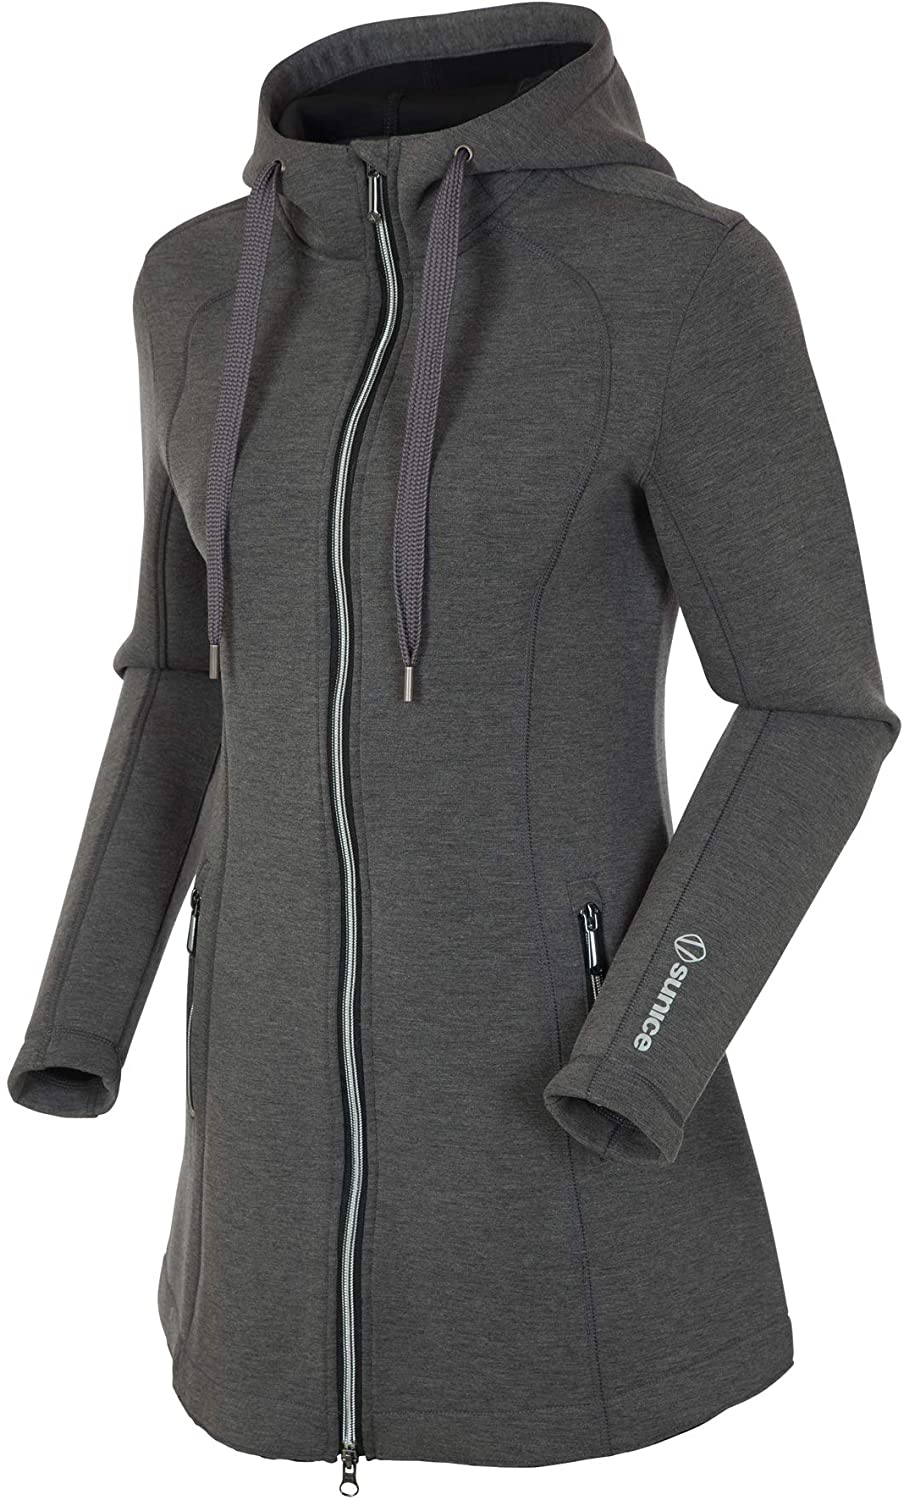 Sunice Bobbie Women's Hoodie - Softshell Zip Up Jacket with Thermal Insulation